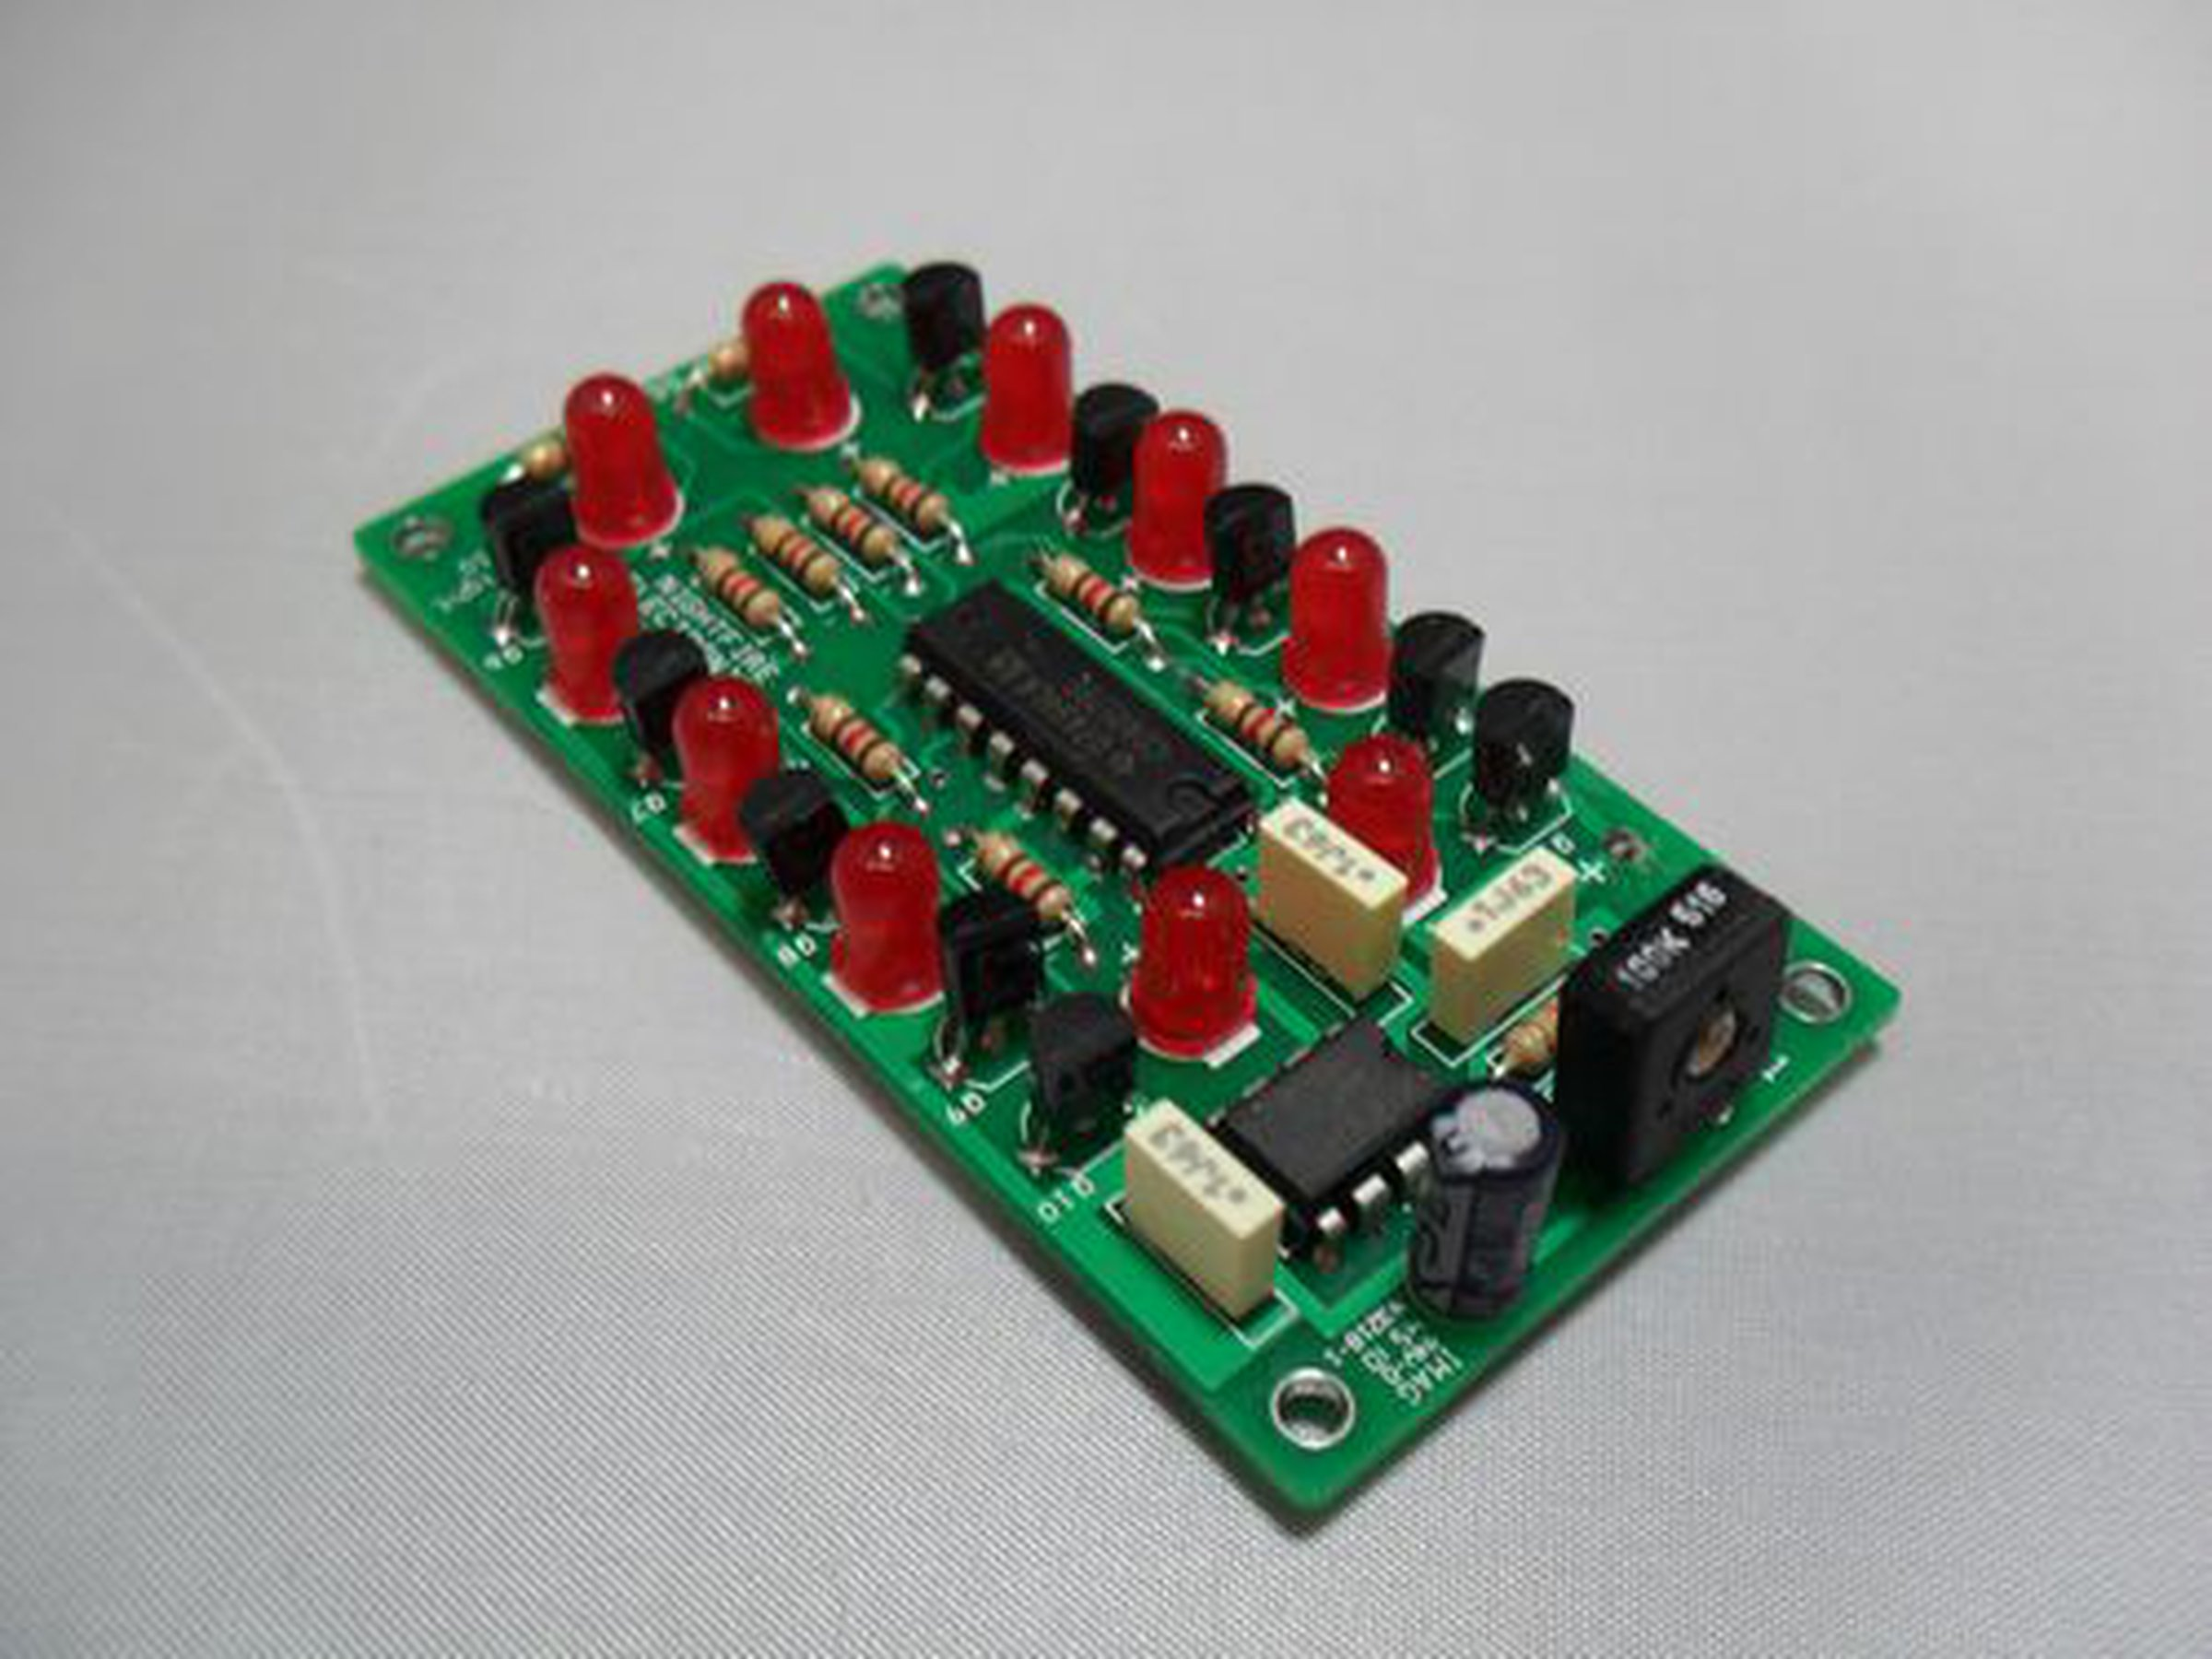 Circui Continue Readin Led Sequencers All About Celebrities Christmas Lights Circuit Ledandlightcircuit Diagram Sequencer With 4017 Decade Counter Chaser Kit 1478 2